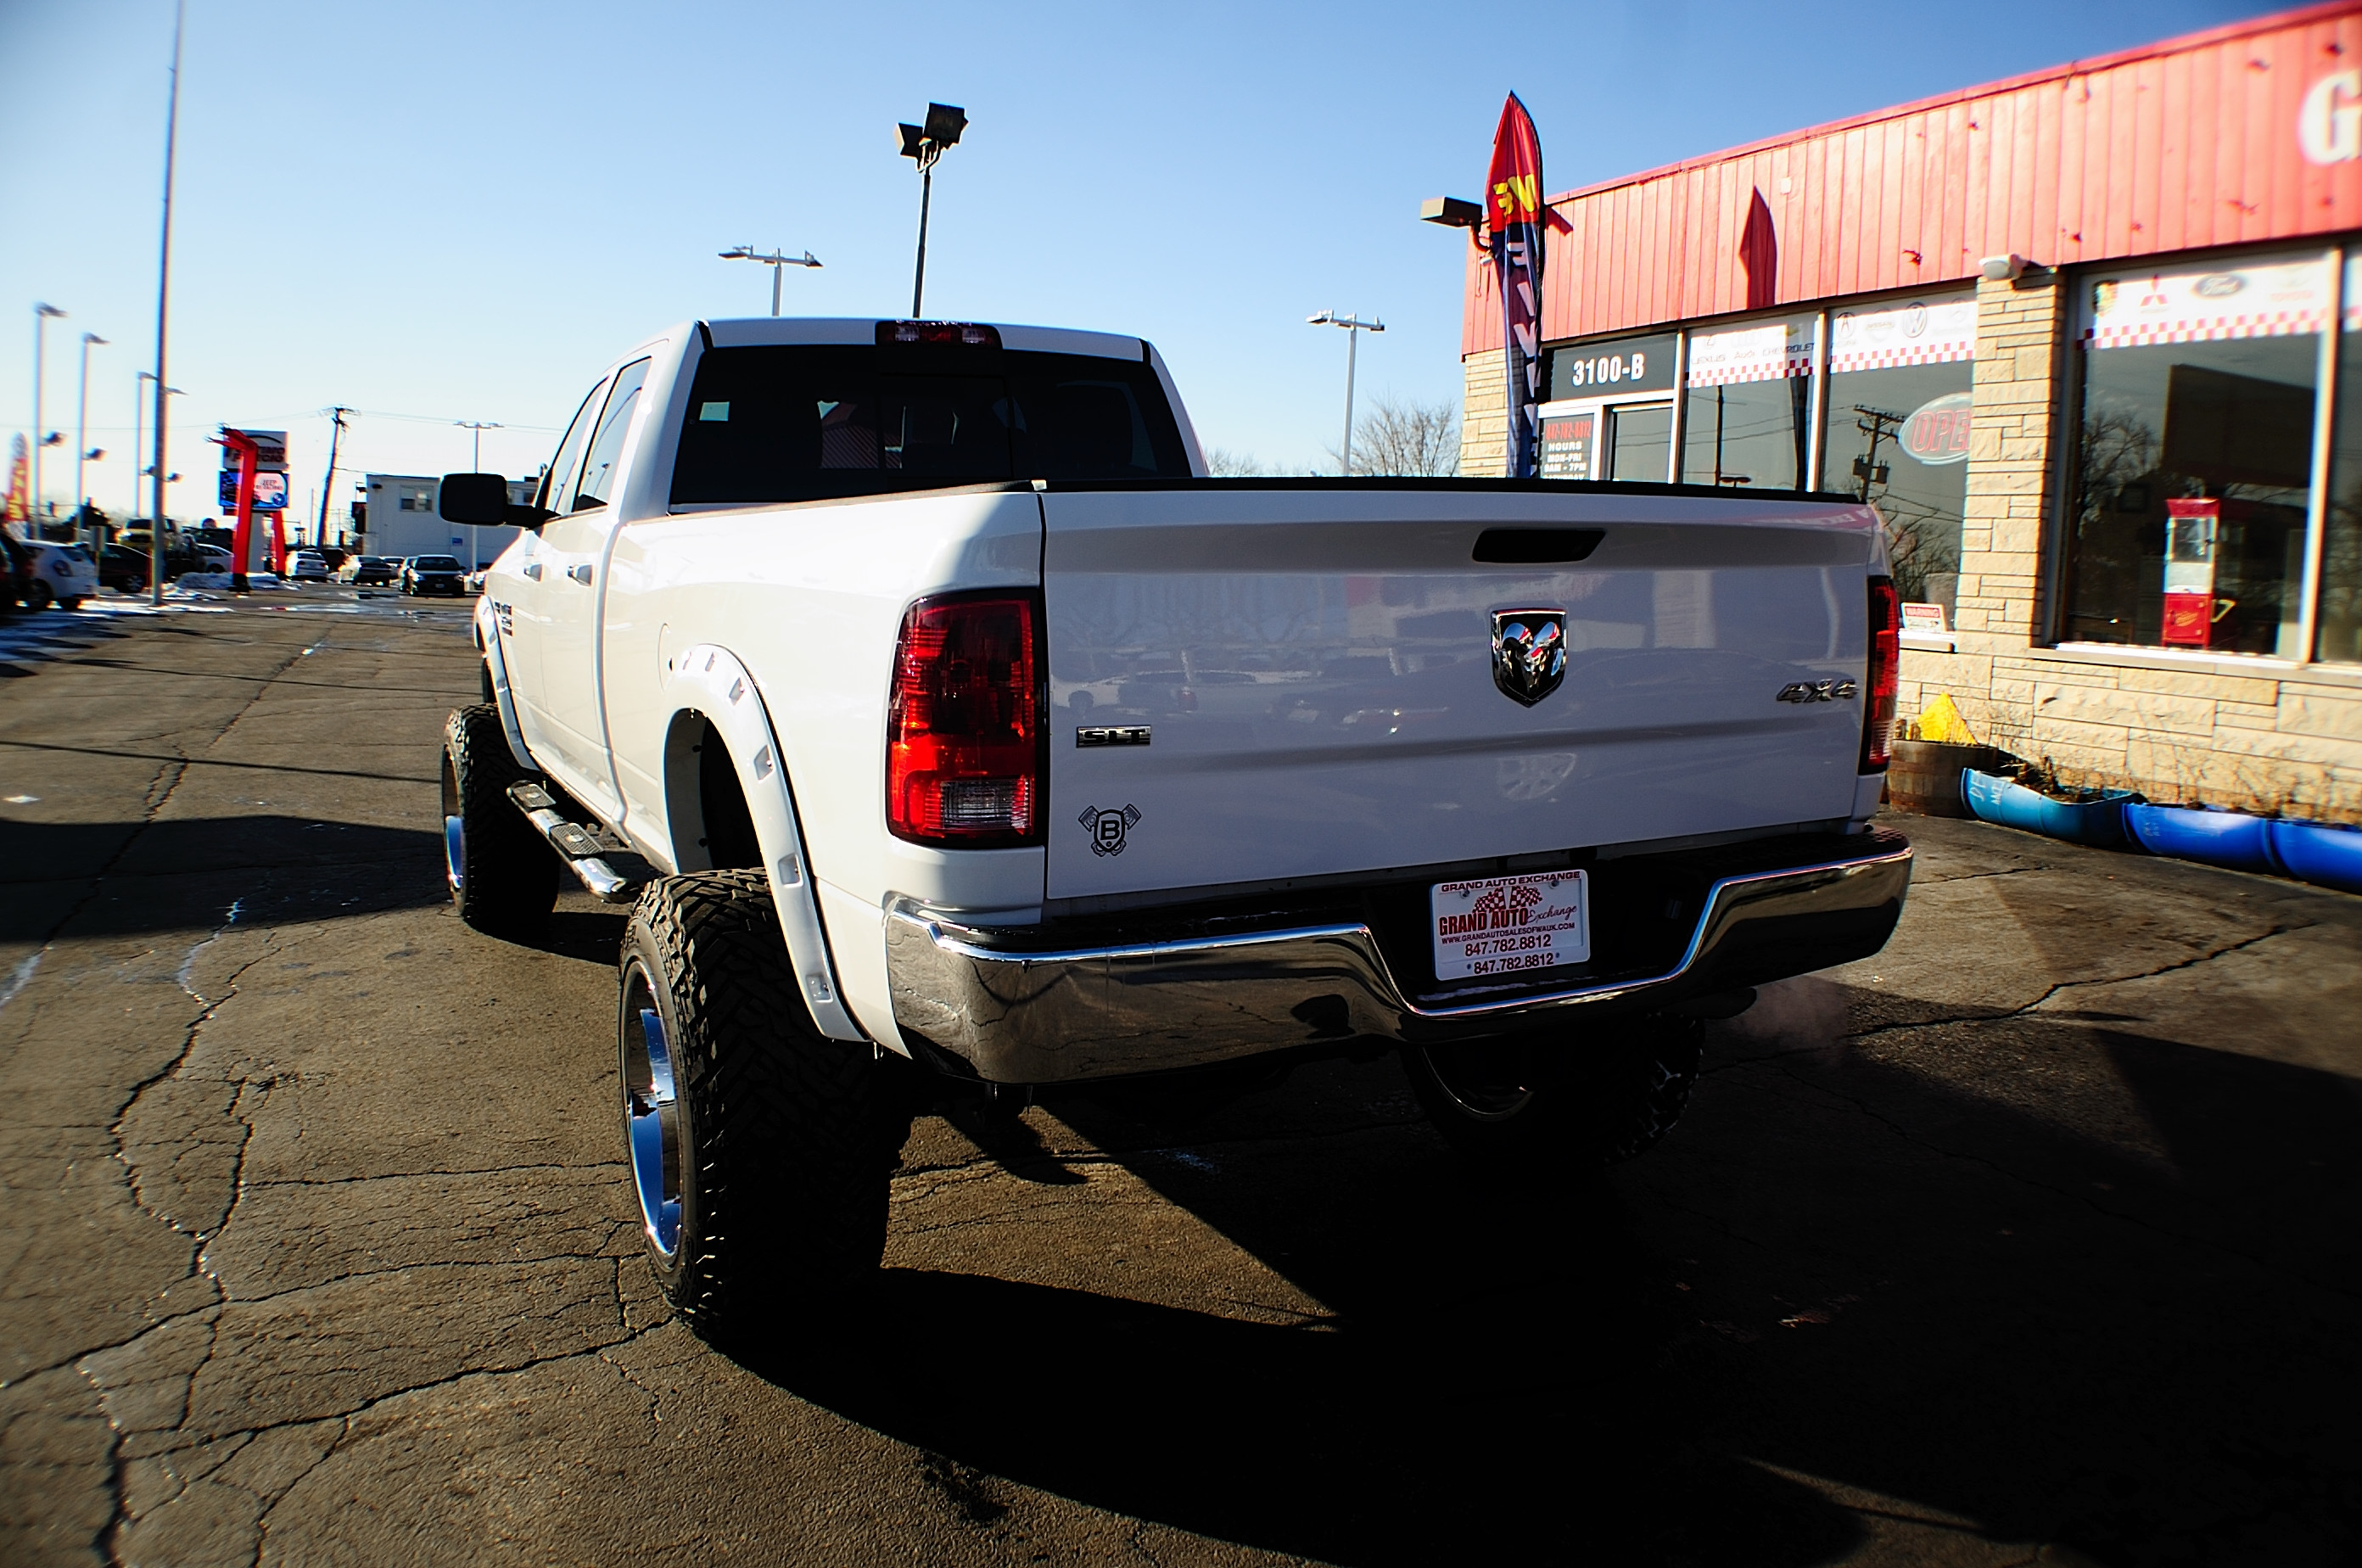 2014 Dodge Ram 2500 HD White 4x4 Monster Truck Sale Riverwoods Tower Lakes